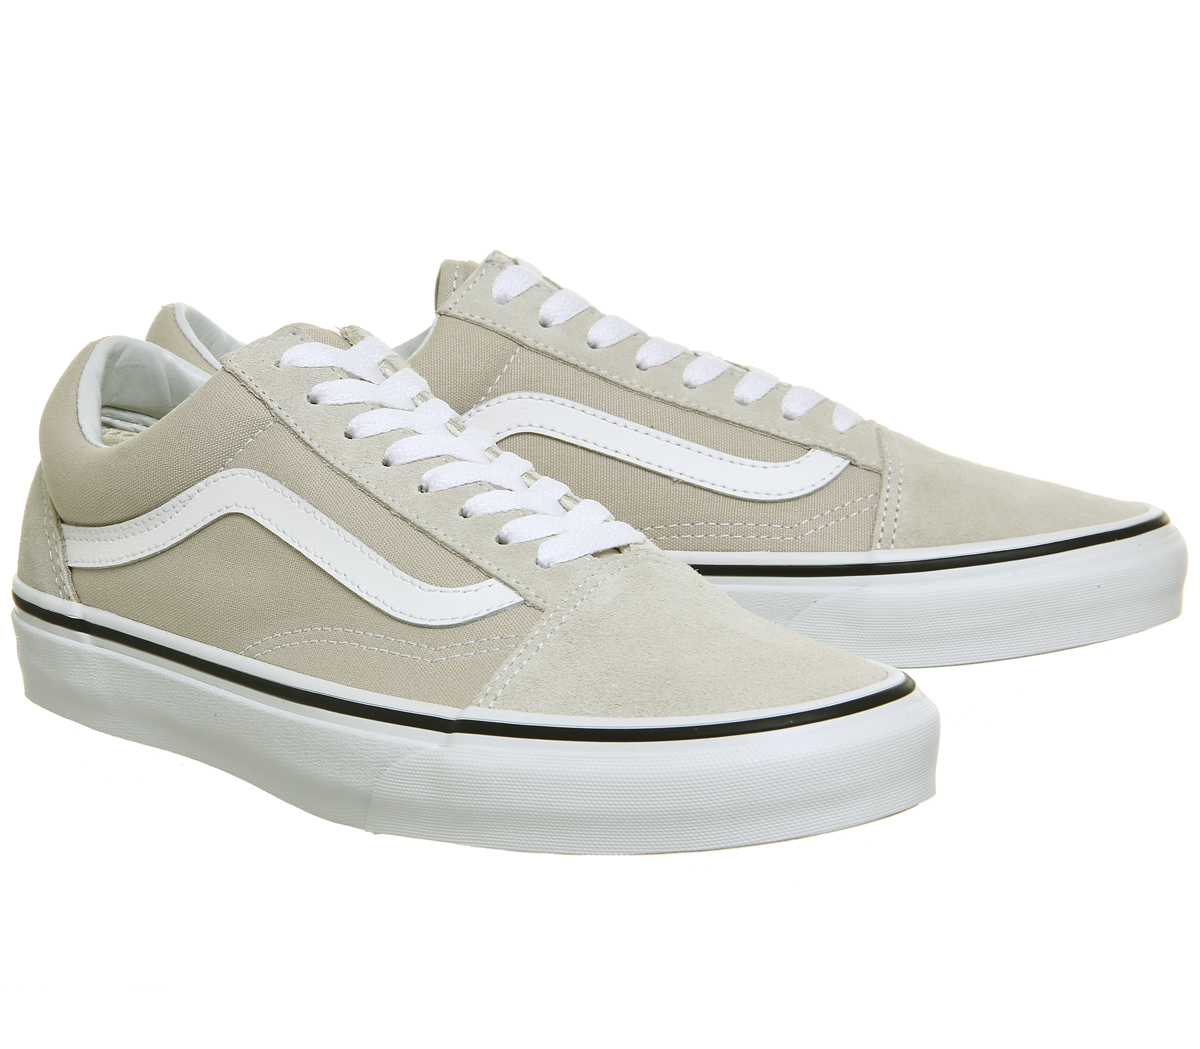 88e3b4a7ccb435 Mens Vans Old Skool Trainers Silver White Trainers Shoes